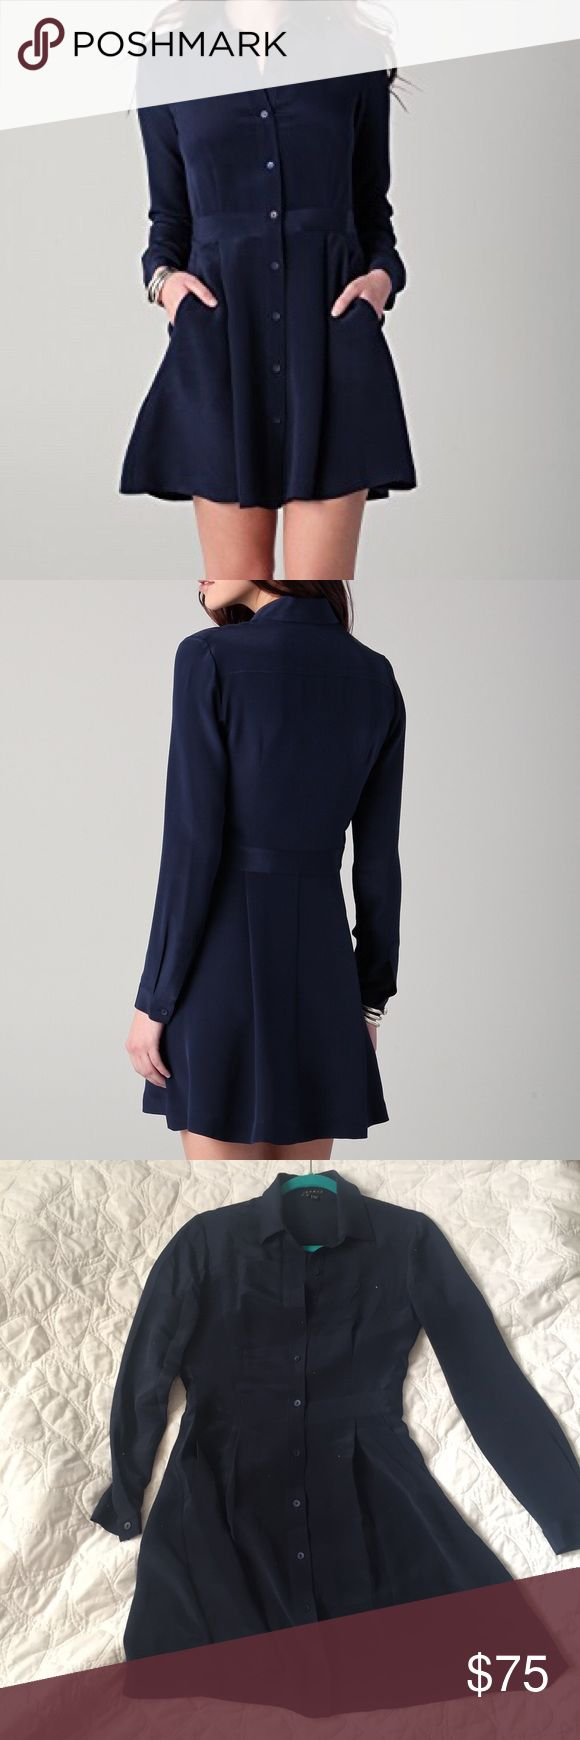 Theory navy blue silk shirt dress Classic Theory Soream - Glowing' A-Line Silk Shirtdress in navy blue size 2. Great condition, just needs a steam. Has pockets and a pleated a-line cut. Great for most occasions, versatile work piece.  Measurements  Waist: 14 in lying flat Length: 32 in from shoulder to hem Theory Dresses Long Sleeve